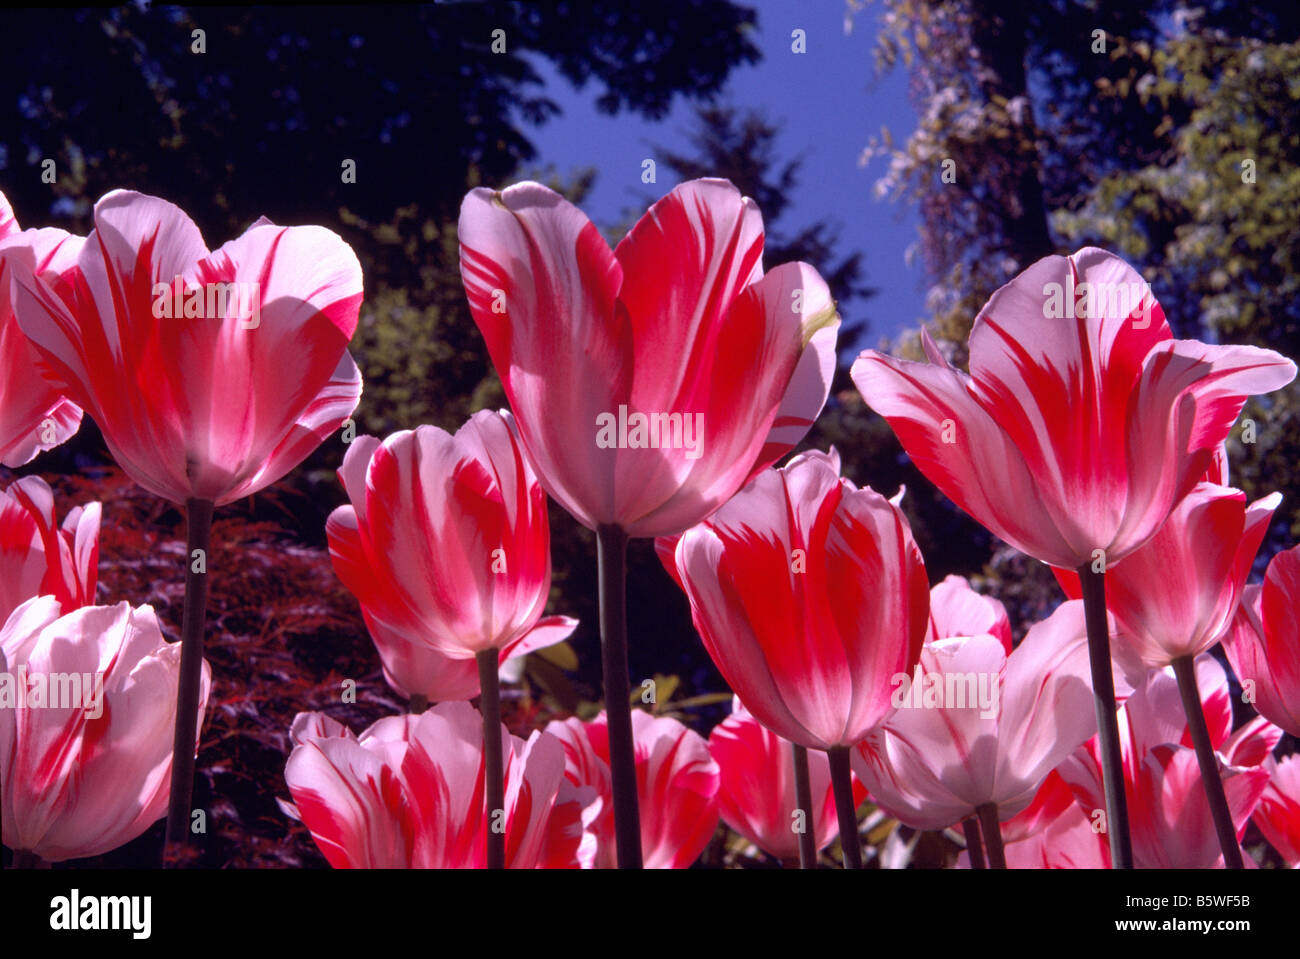 Spring flowers flowering blooming blooms bc canada stock photos red and white tulips tulip bloom spring flowers blooming flower garden stanley park dhlflorist Choice Image